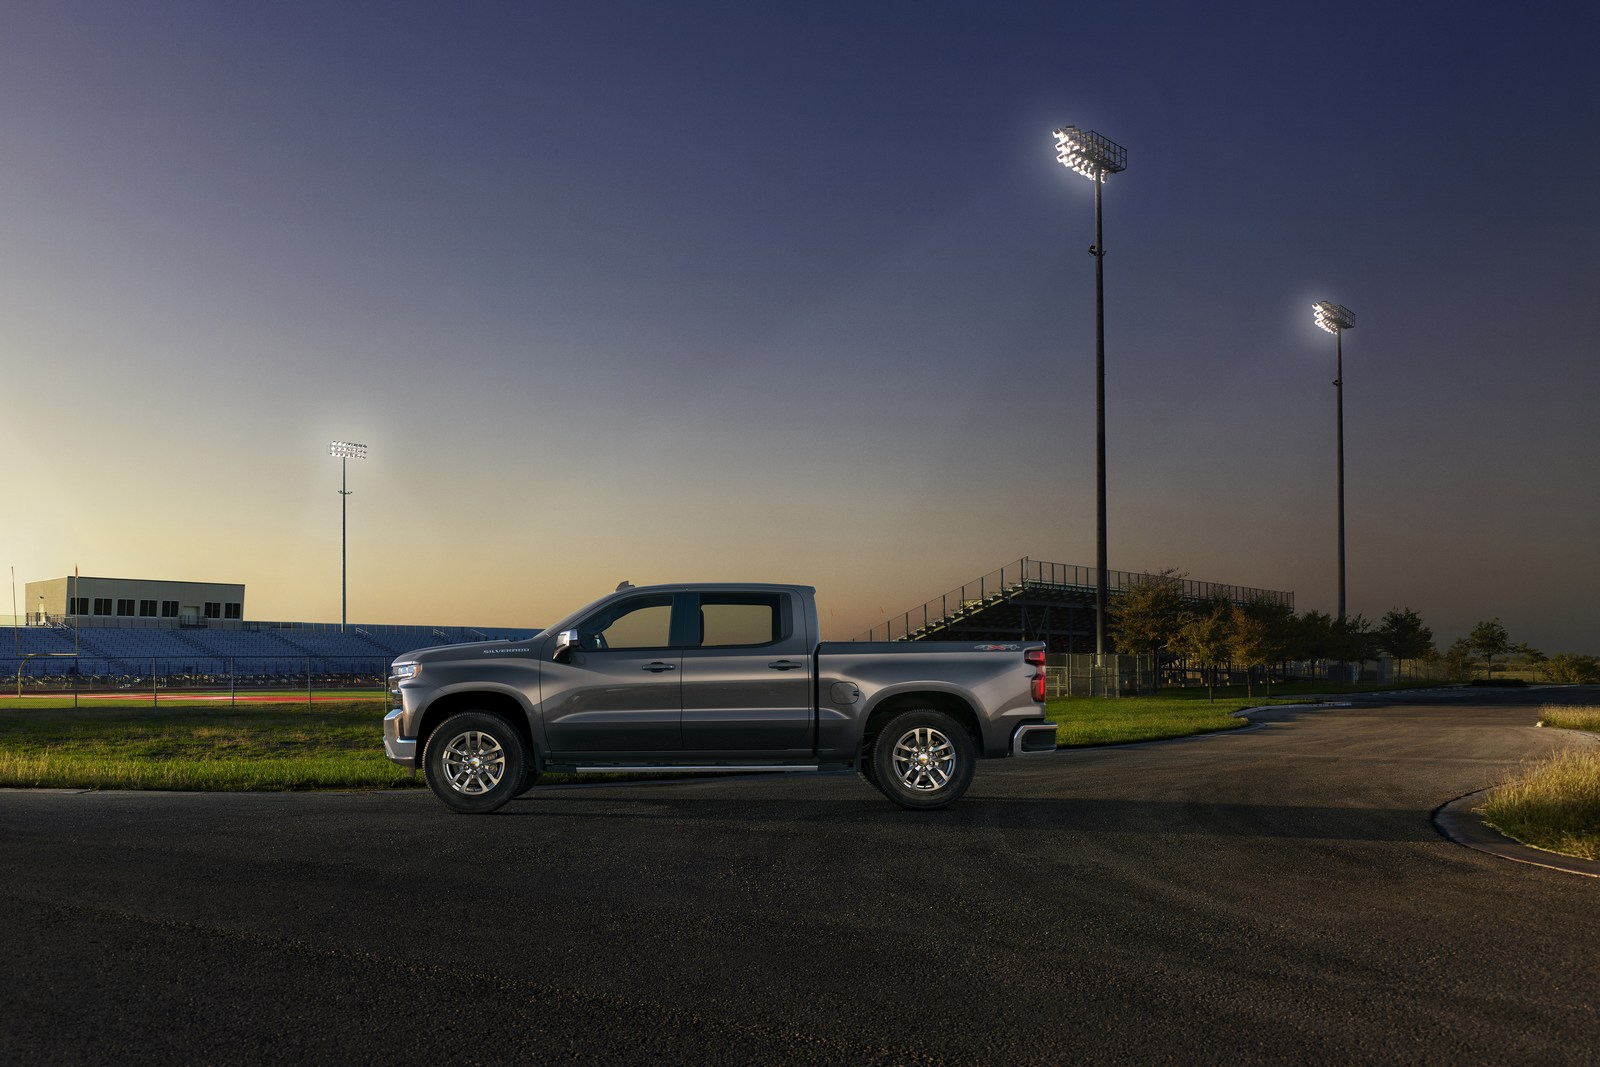 The all-new 2019 Silverado LT features chrome accents on the bumpers, front grille and mirror caps, a Chevrolet bowtie in the grille, LED reflector headlamps and signature daytime running lights. The interior features an 8-inch color touch screen and available leather seating surfaces.